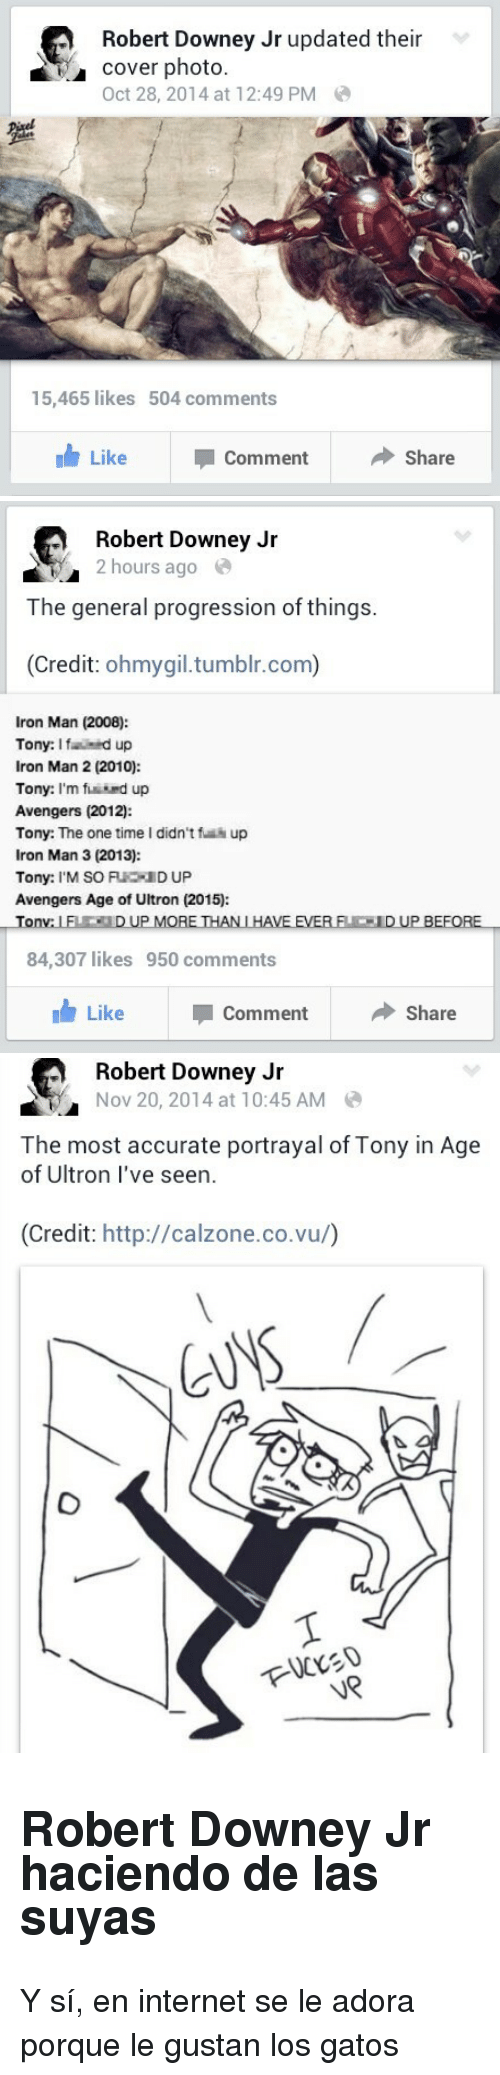 cover photo: Robert Downey Jr updated their  cover photo.  Oct 28, 2014 at 12:49 PM  15,465 likes  504 comments  Like  Comment  ◆ Share   Robert Downey Jir  2 hours ago  The general progression of things.  (Credit: ohmygil.tumblr.com)  Iron Man (2008):  Tony: Ifid up  Iron Man 2 (2010):  Tony: I'm find up  Avengers (2012):  Tony: The one time I didn't f up  Iron Man 3 (2013):  Tony: I'M SO FUCID UP  Avengers Age of Ultron (2015):  on  84,307 likes  950 comments  Like  Comment  Share   Robert Downey Jr  Nov 20, 2014 at 10:45 AM  The most accurate portrayal of Tony in Age  of Ultron I've seen.  (Credit: http://calzone.co.vu/)  UR <h2>Robert Downey Jr haciendo de las suyas</h2><p>Y sí, en internet se le adora porque le gustan los gatos</p>